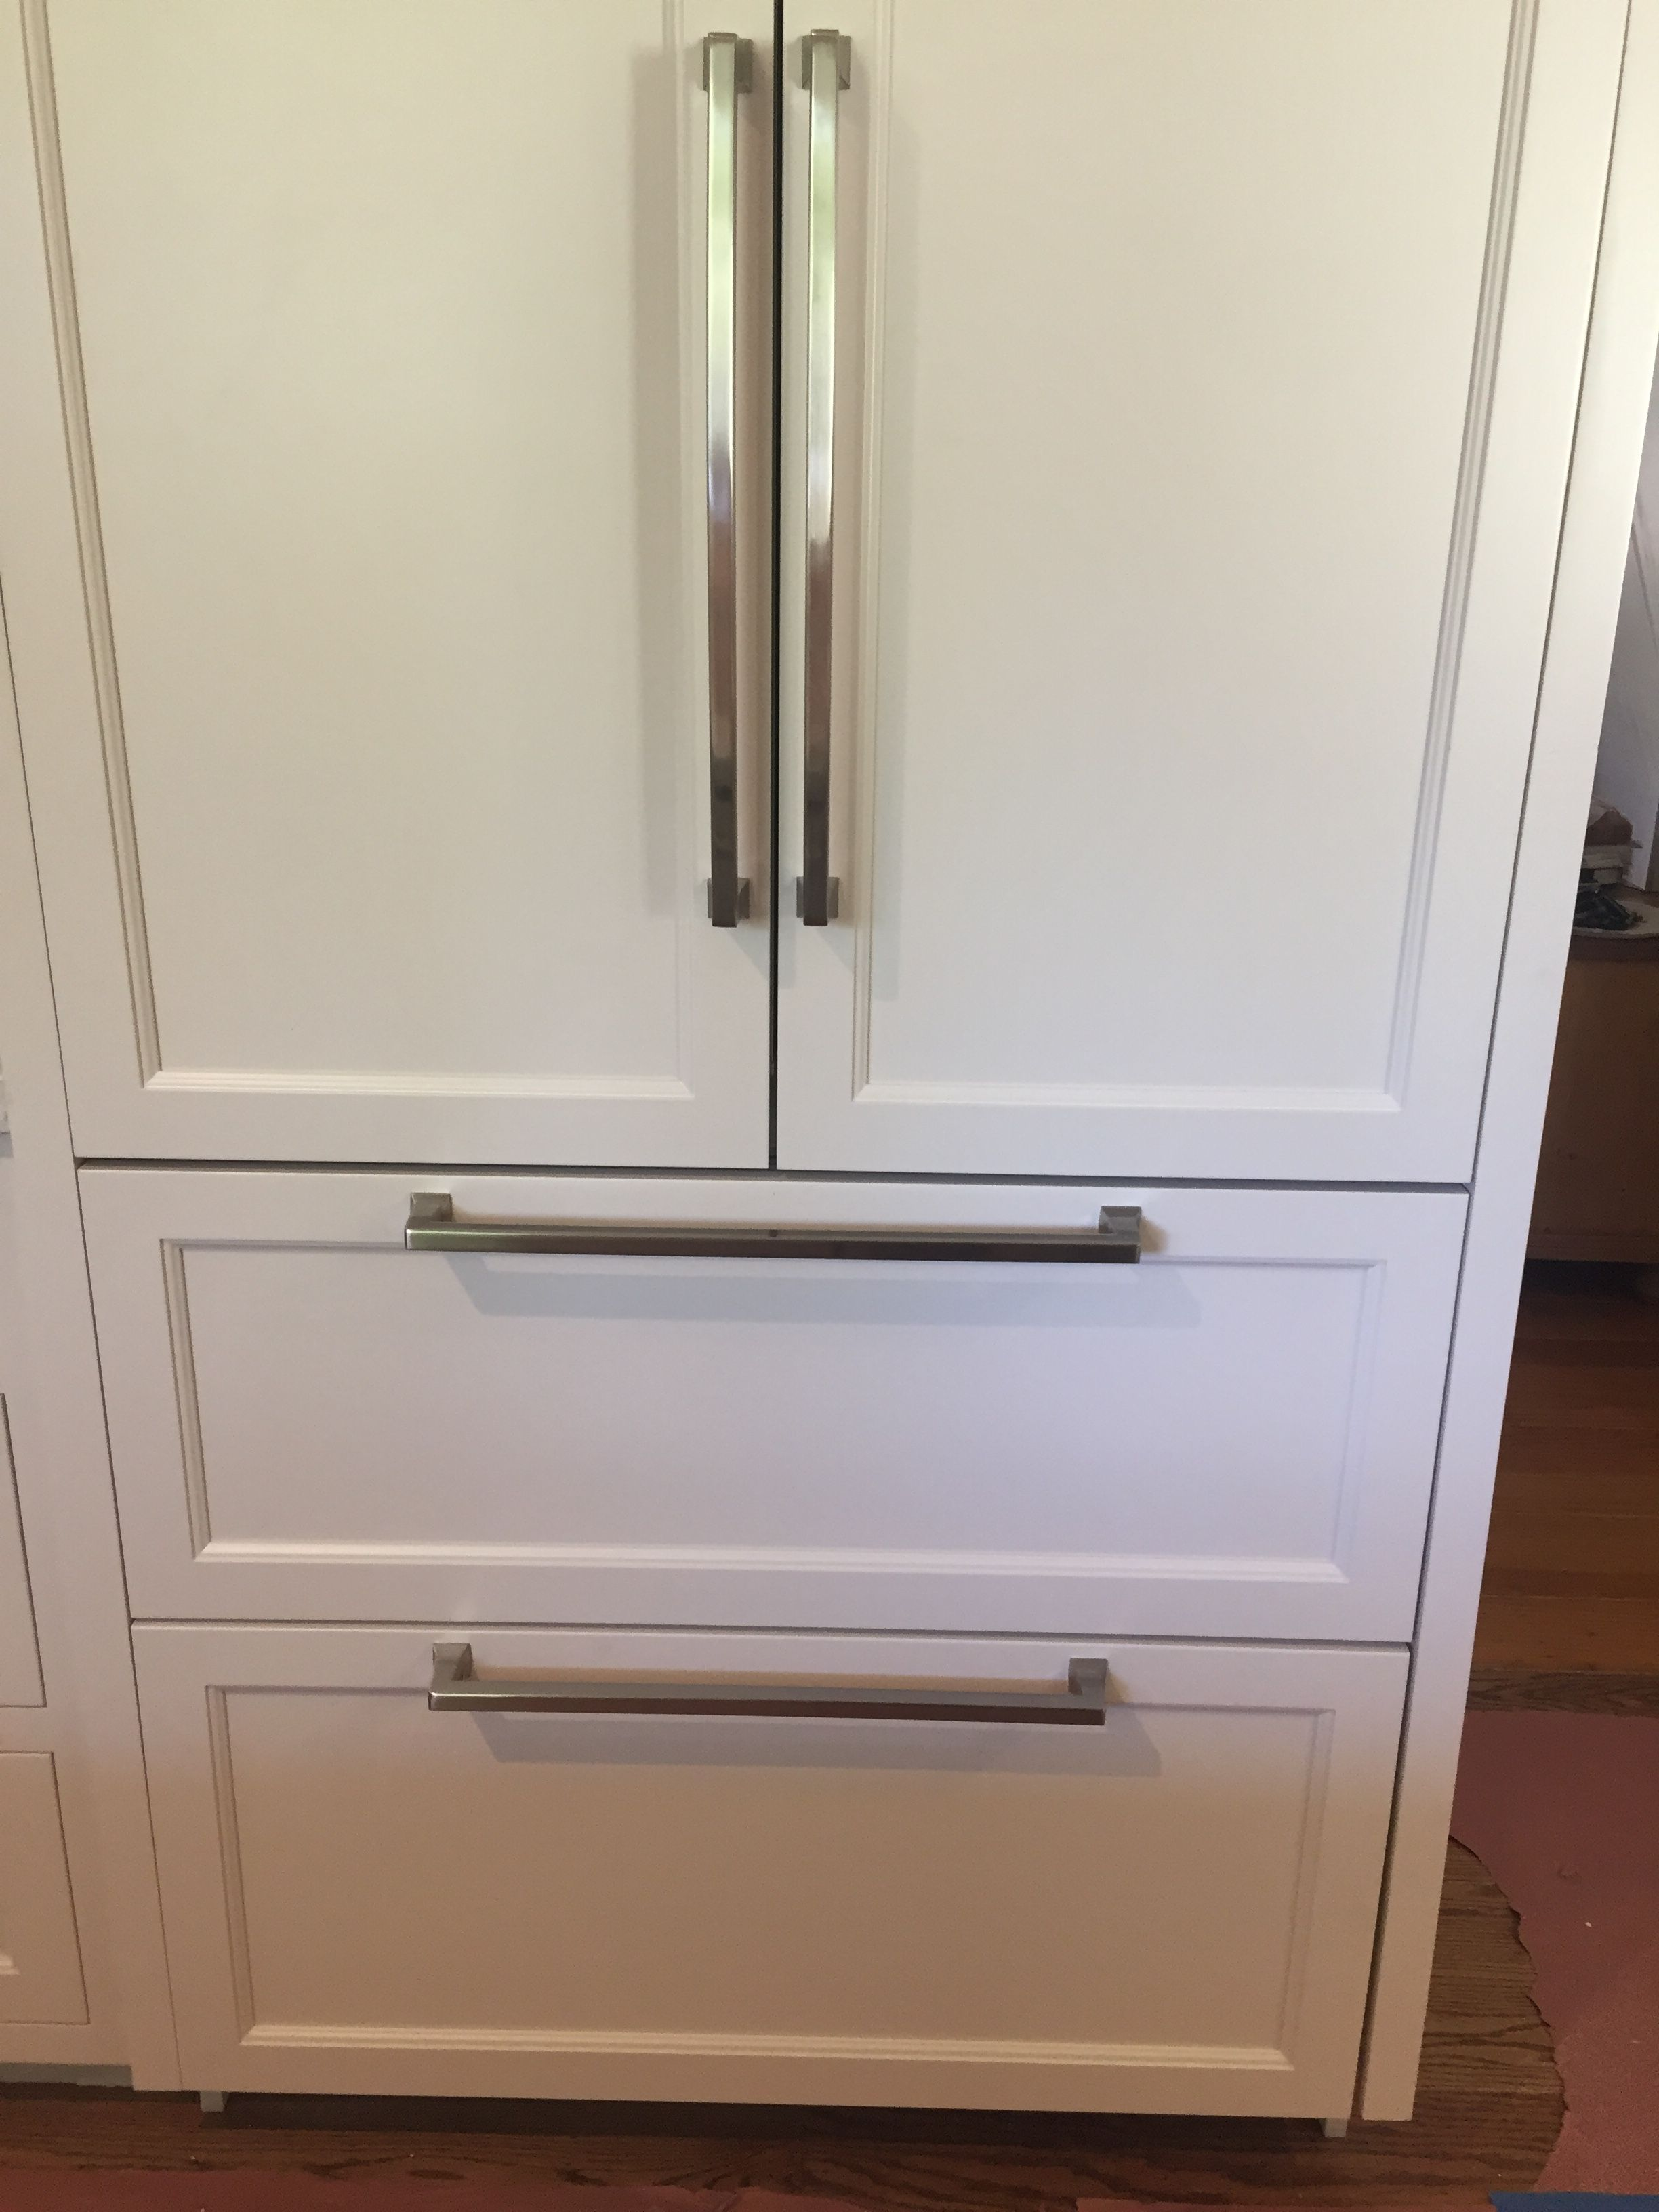 Emtek Alexander Appliance Pulls These Appliance Pulls Are All I Hoped For Great Cla Inexpensive Kitchen Remodel Cheap Kitchen Remodel Simple Kitchen Remodel